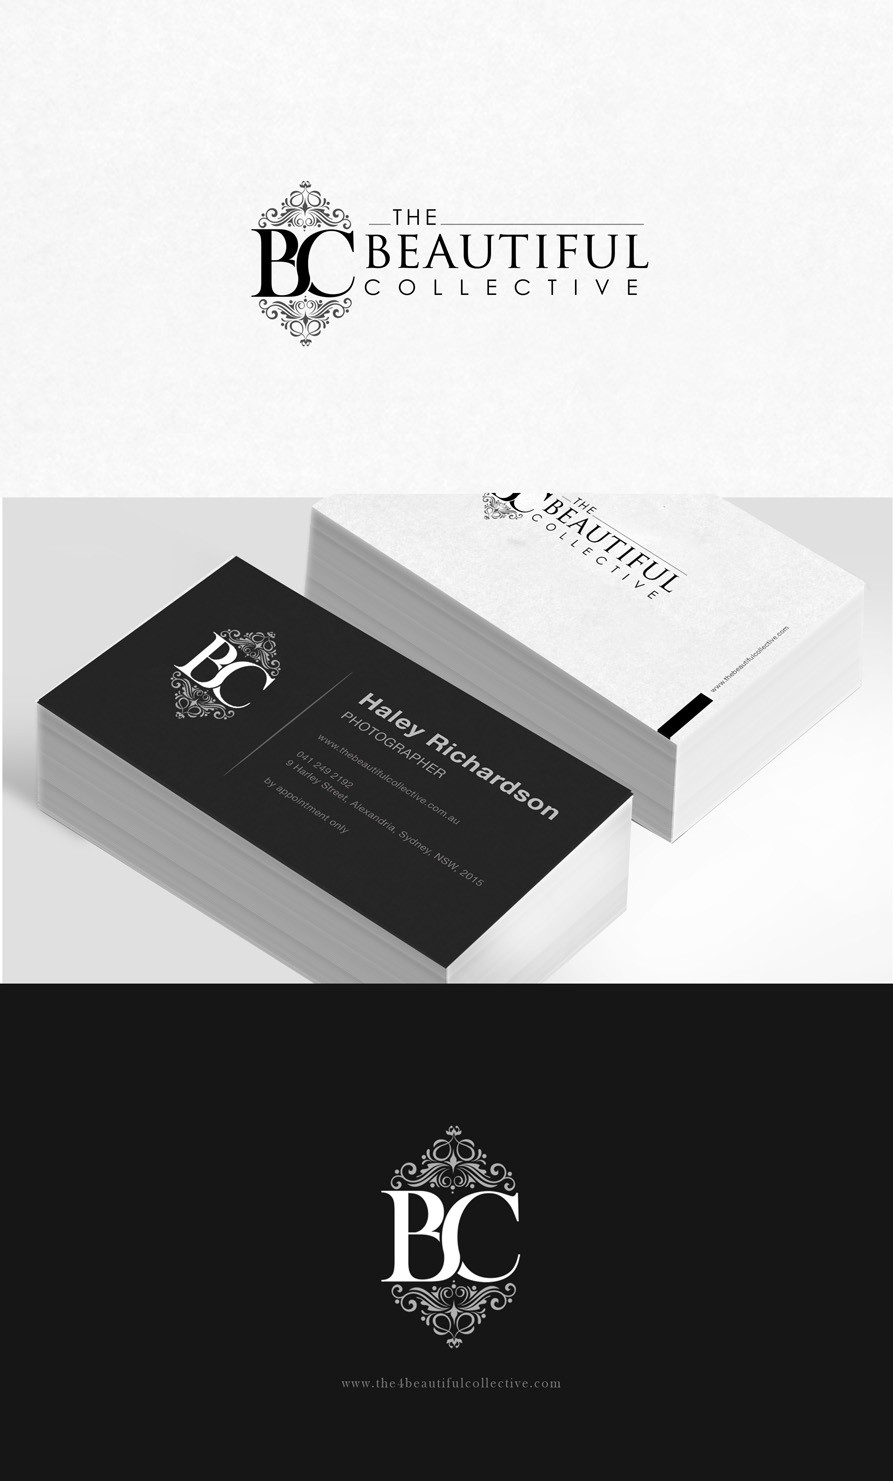 New logo and business card wanted for The Beautiful Collective